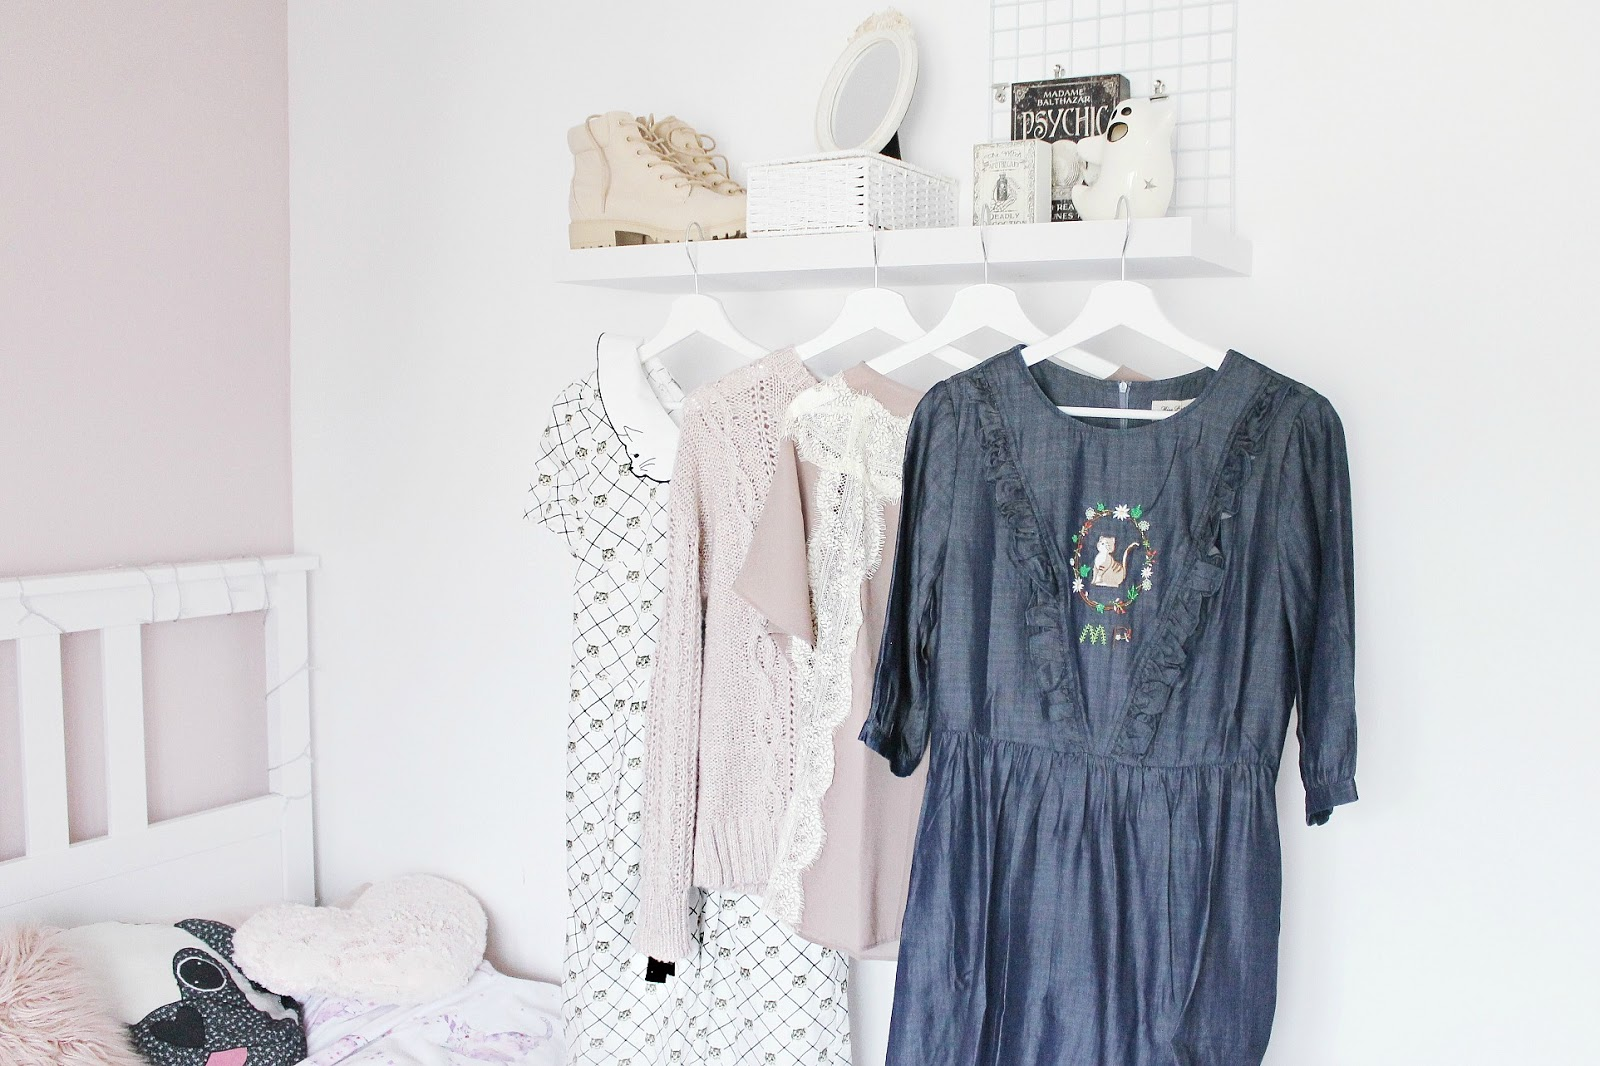 New autumn dresses and pretty pieces